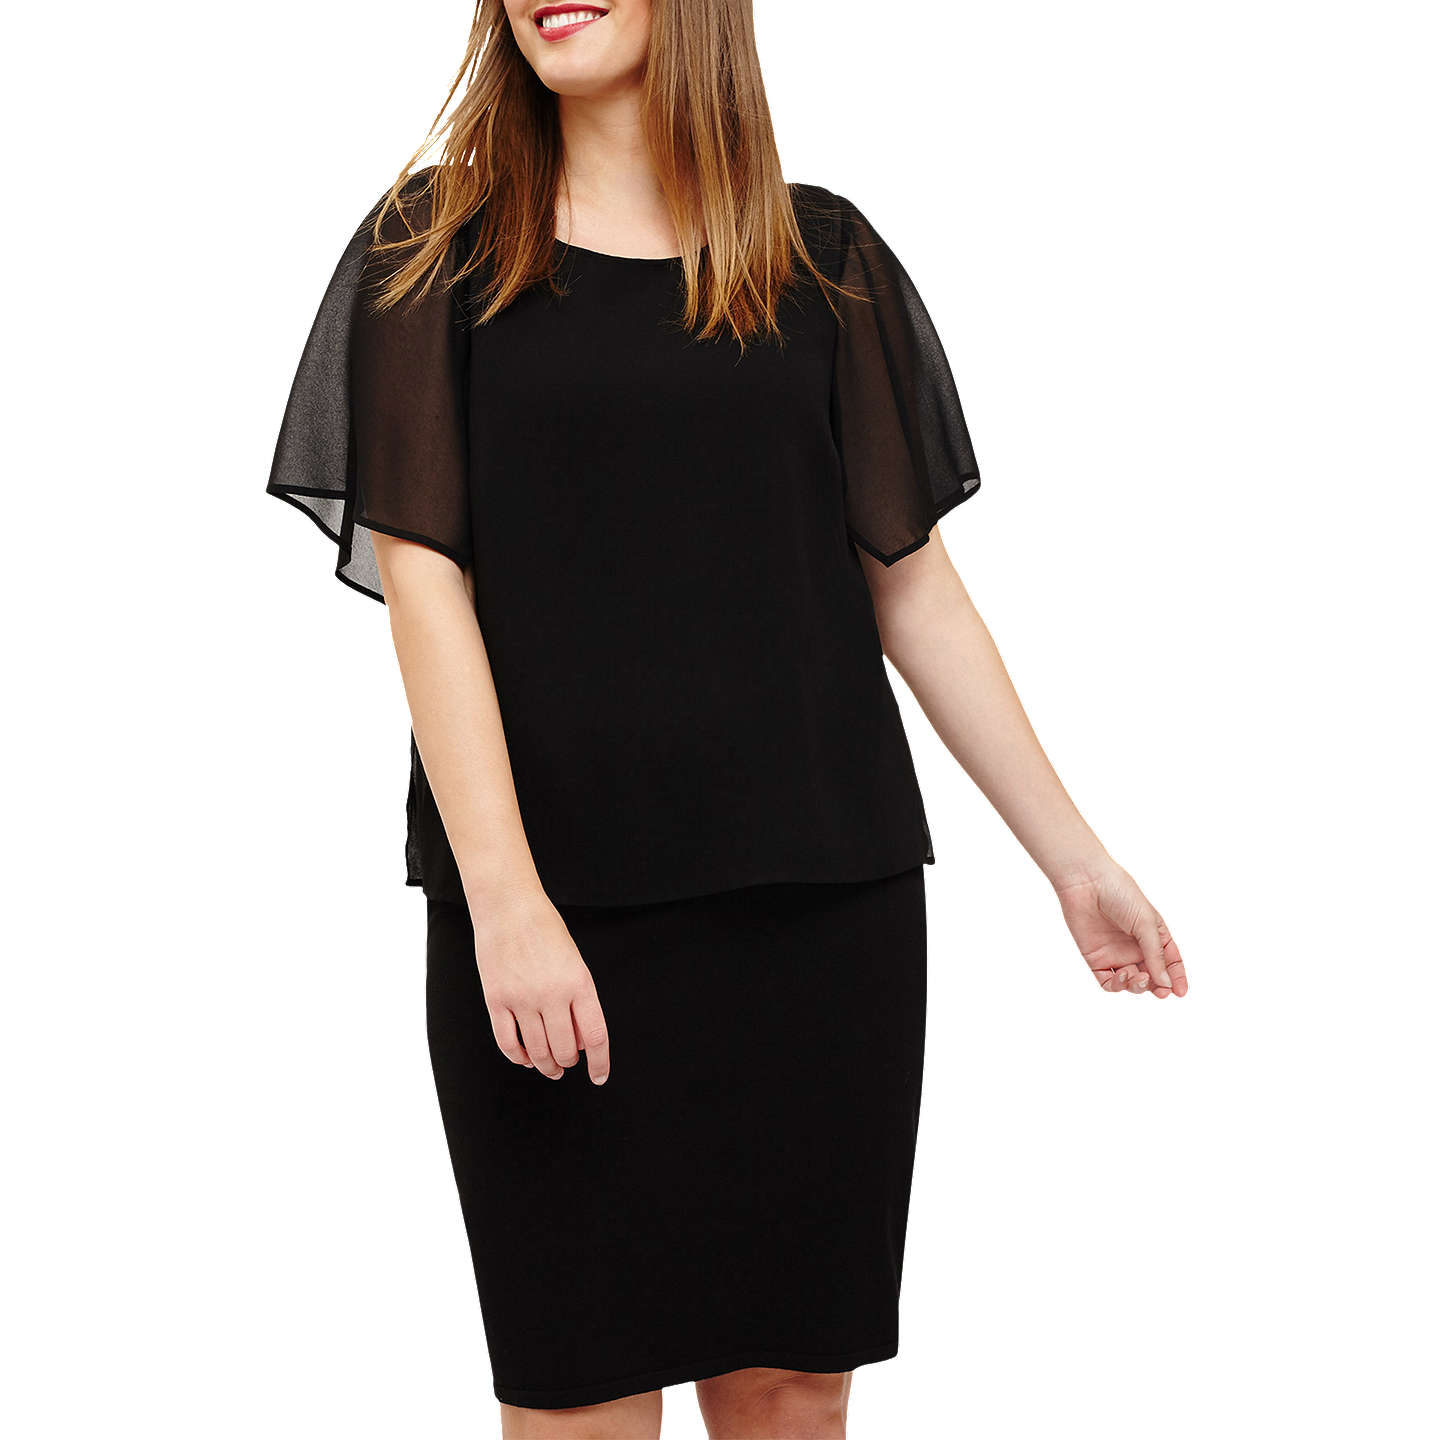 Studio 8 Minnie Double Layer Dress Top Quality Cheap Price Real Cheap Price Factory Outlet Cheap Online xq2HI9